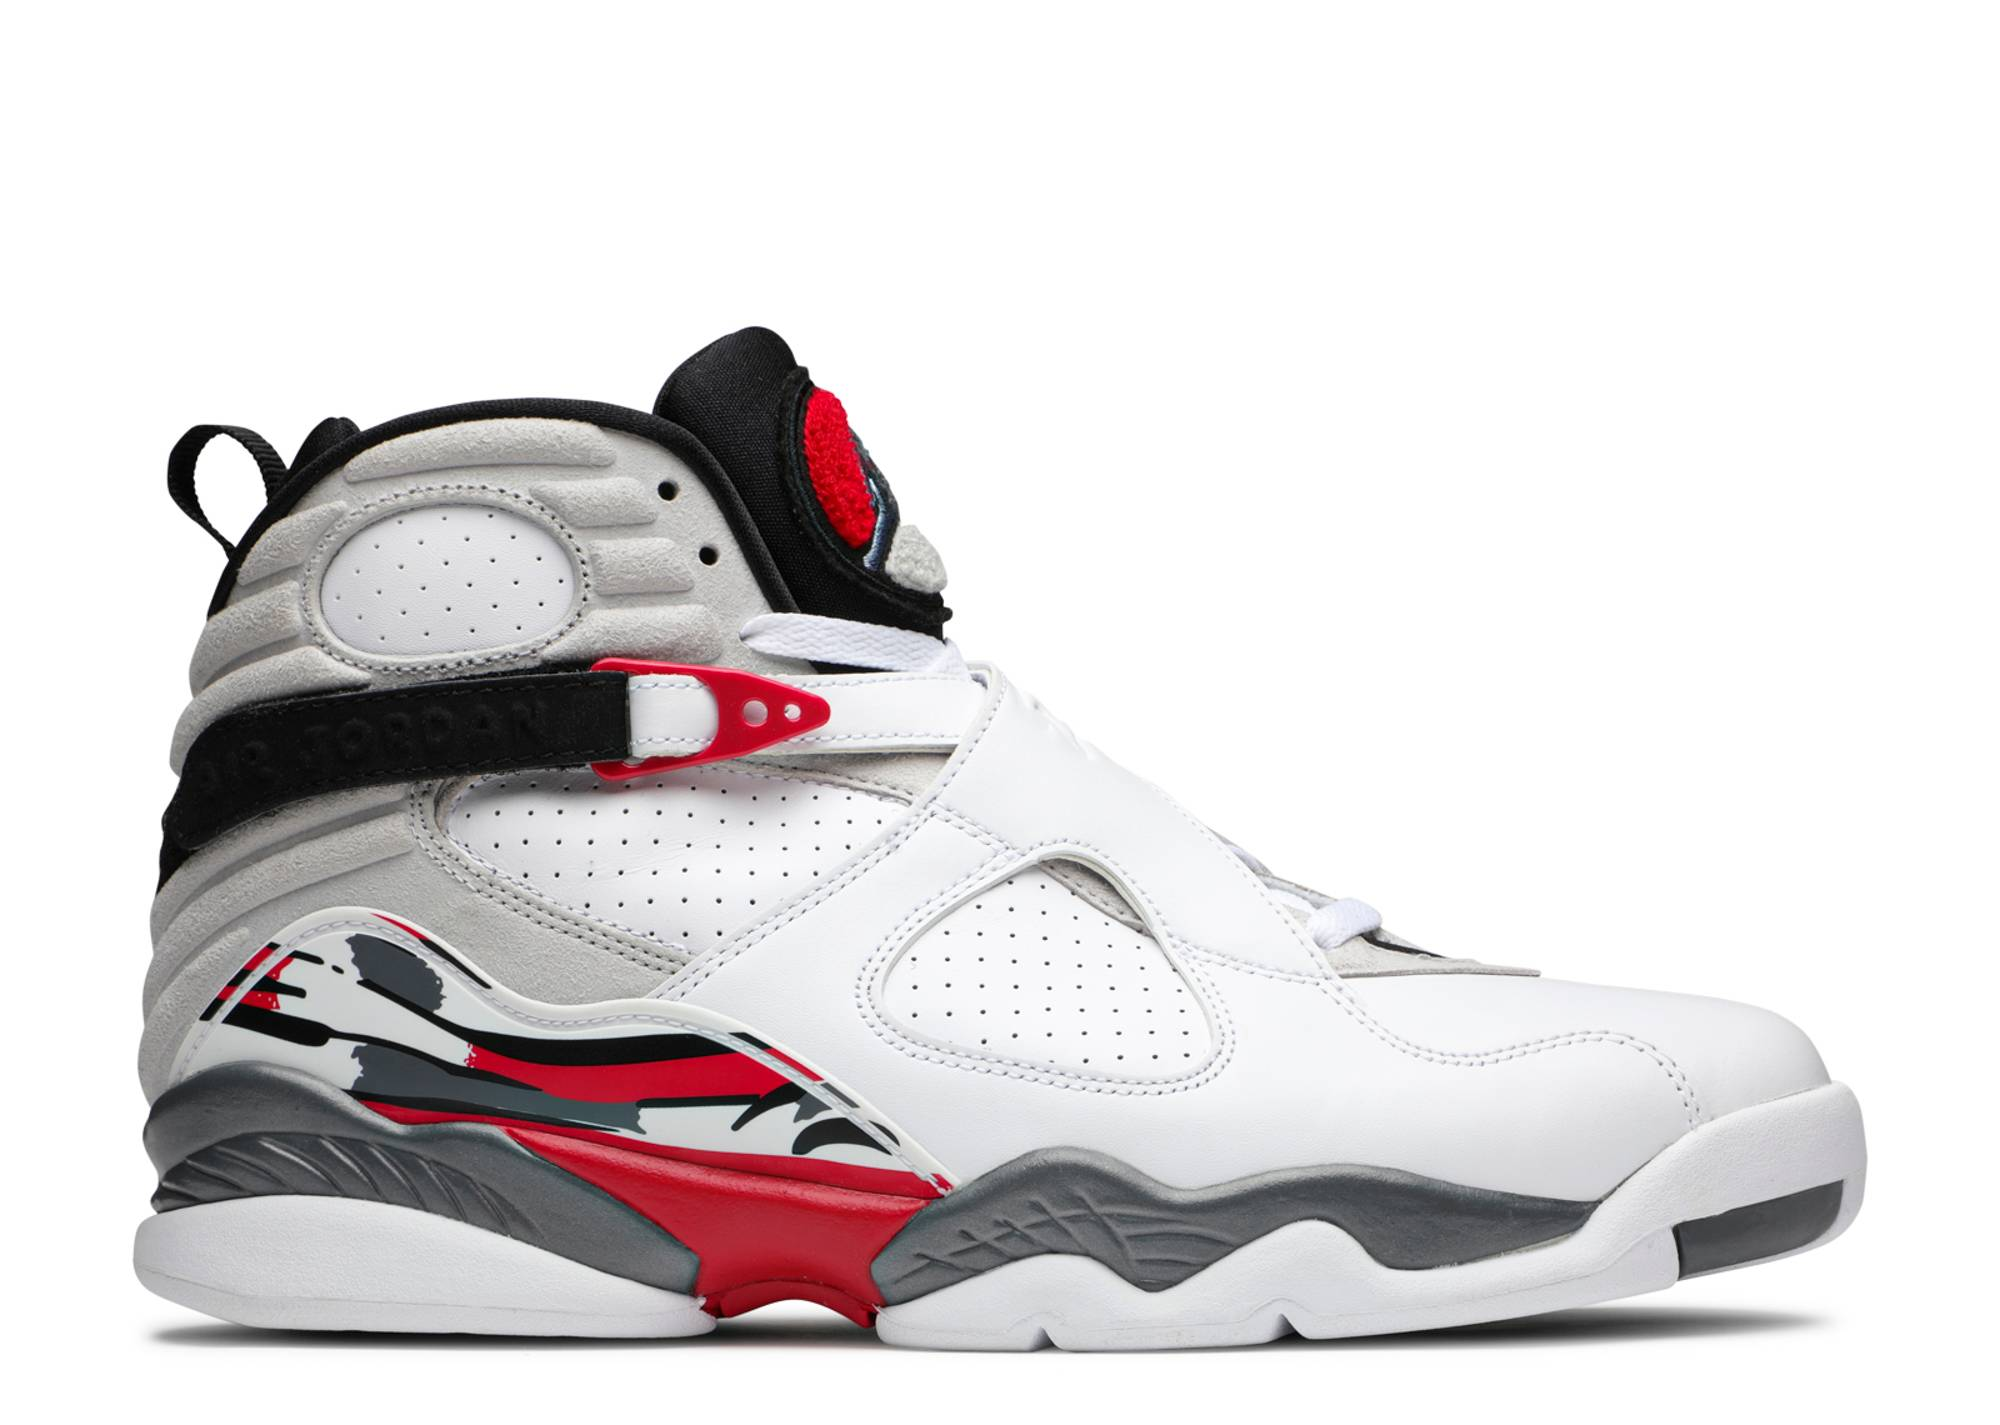 magasin d'usine c46e6 afeb4 Air Jordan 8 (VIII) Shoes - Nike | Flight Club